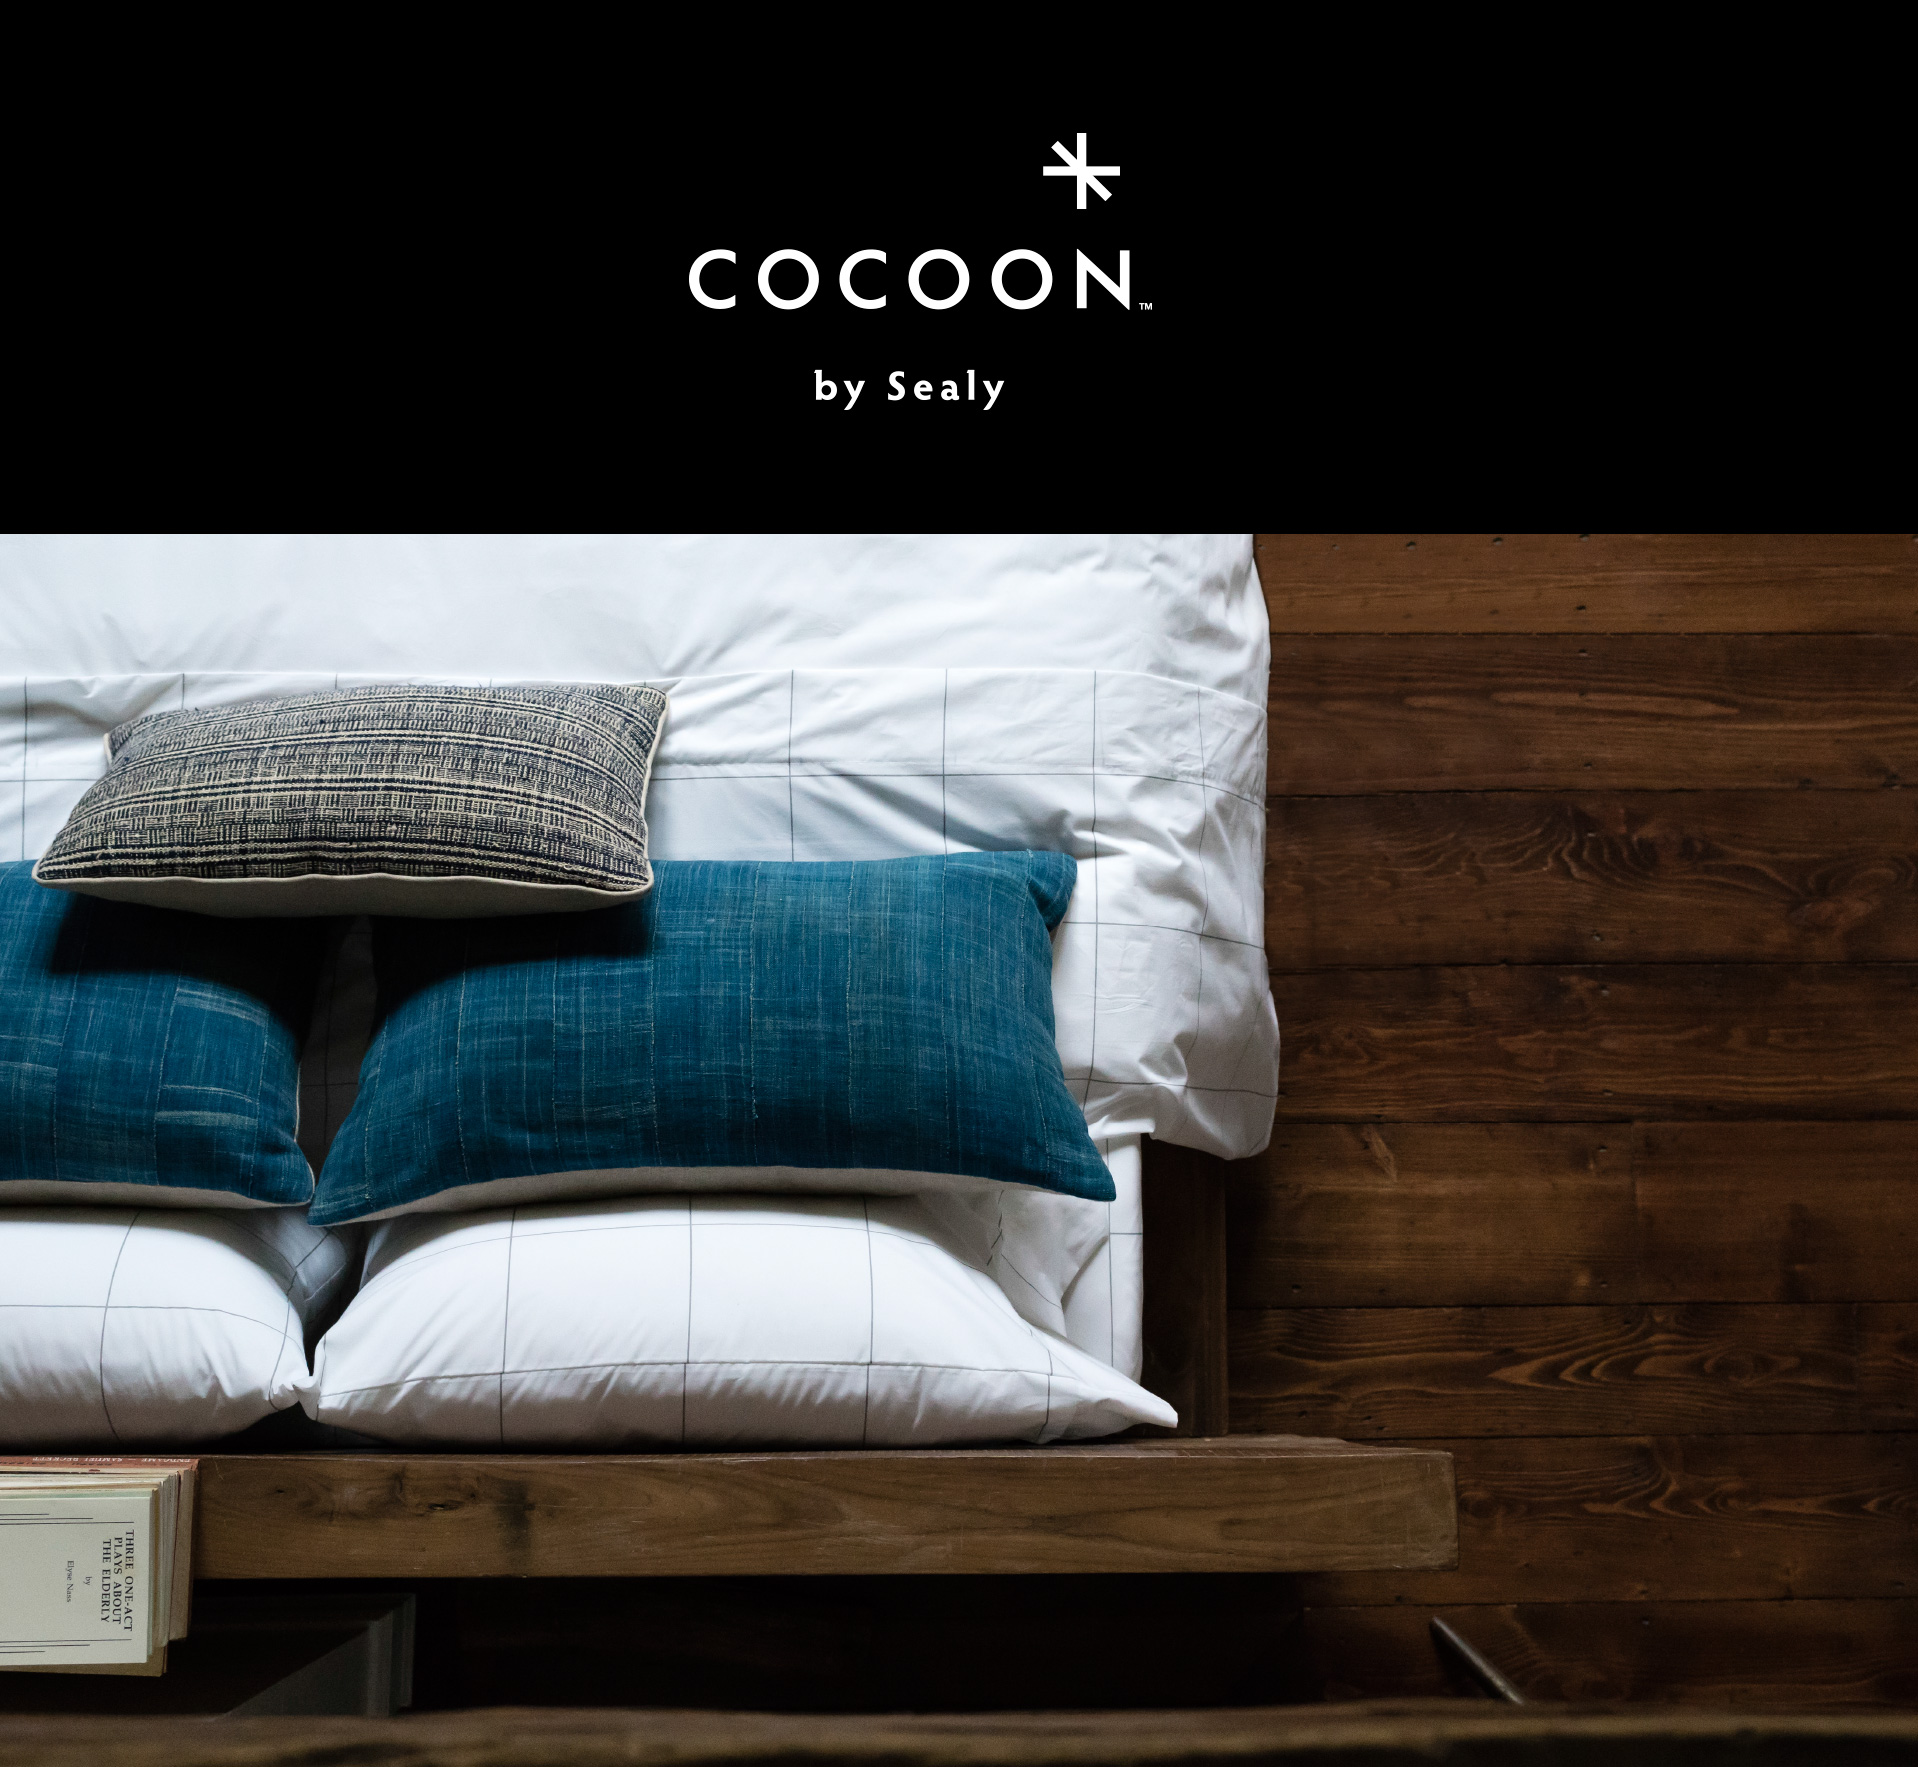 Cocoon by Sealy.